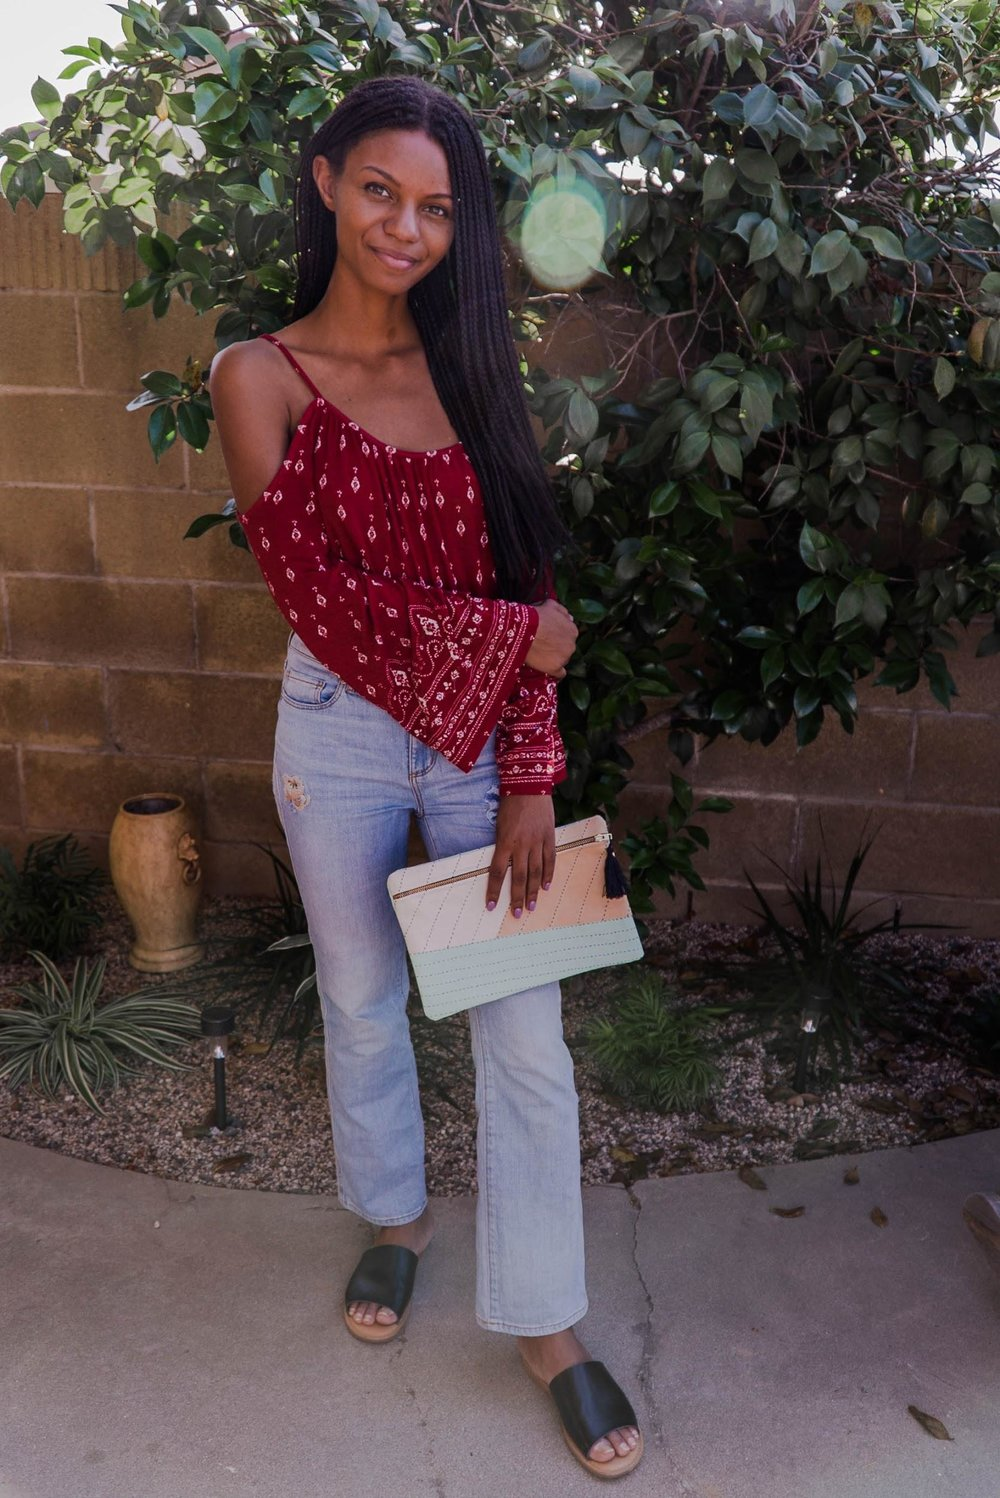 Cute peasant top and thrifted jeans // A Week Of 1970s-Inspired Outfits With Leah Thomas, The Sustainable Lifestyle Blogger Behind Green Girl Leah on The Good Trade